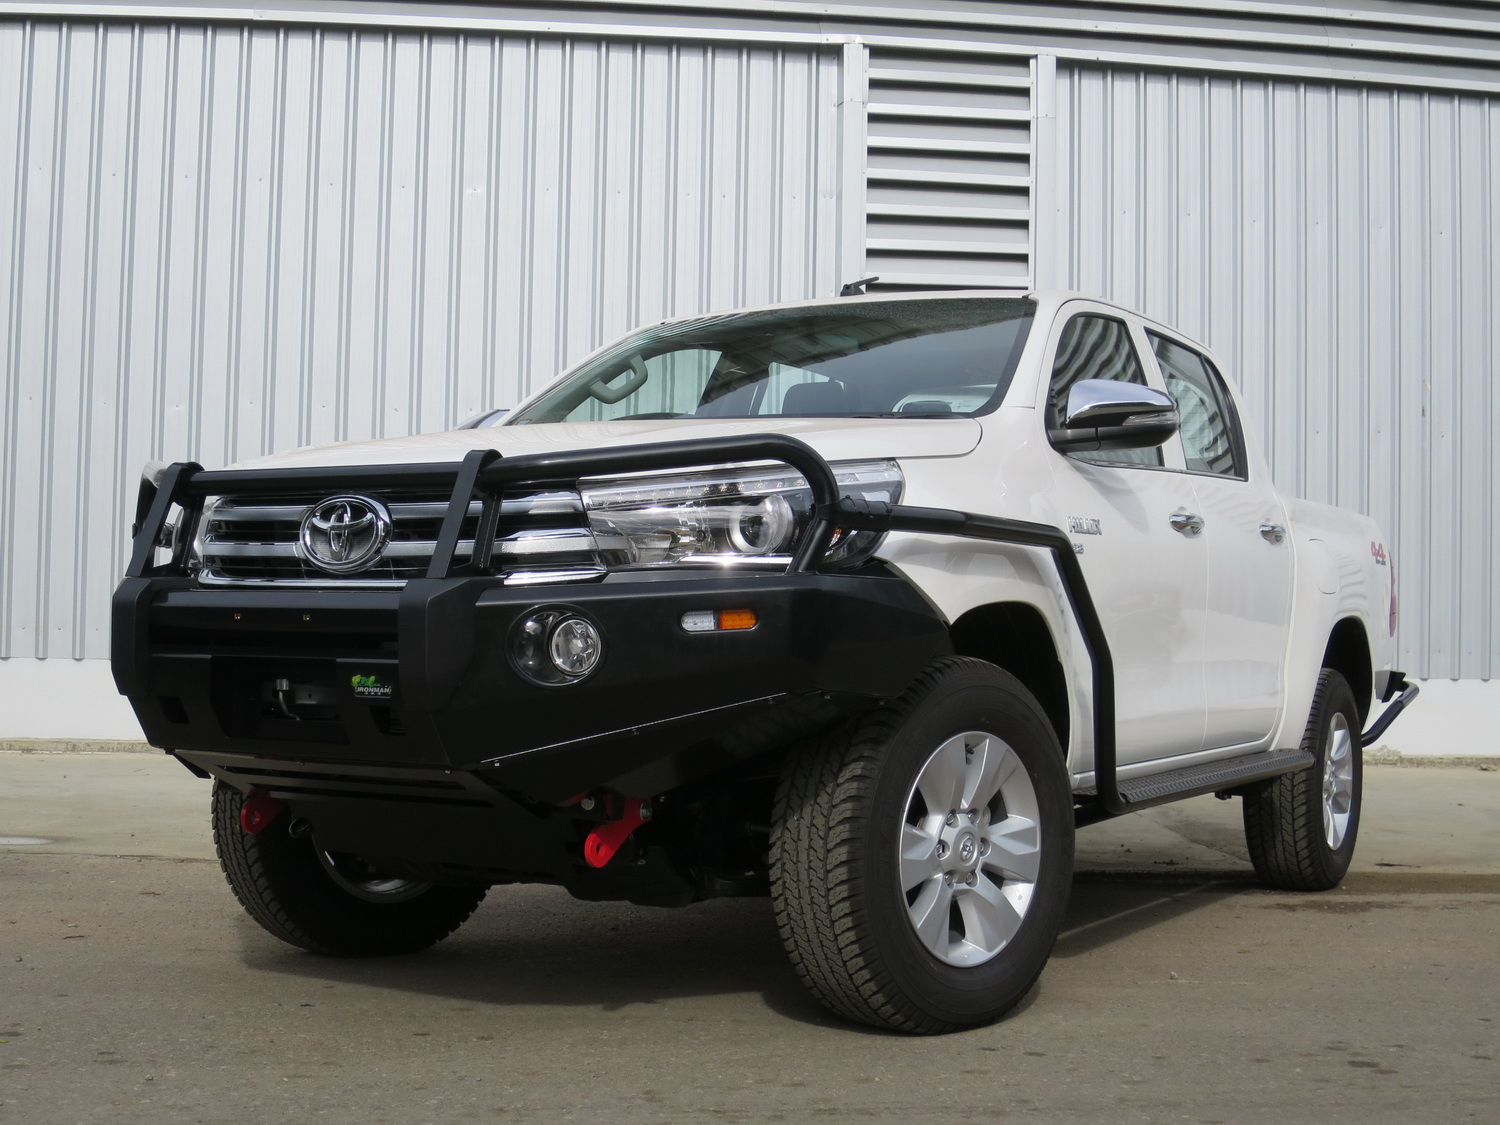 ironman 4x4 preview barwork for the 2015 toyota hilux practical motoring. Black Bedroom Furniture Sets. Home Design Ideas